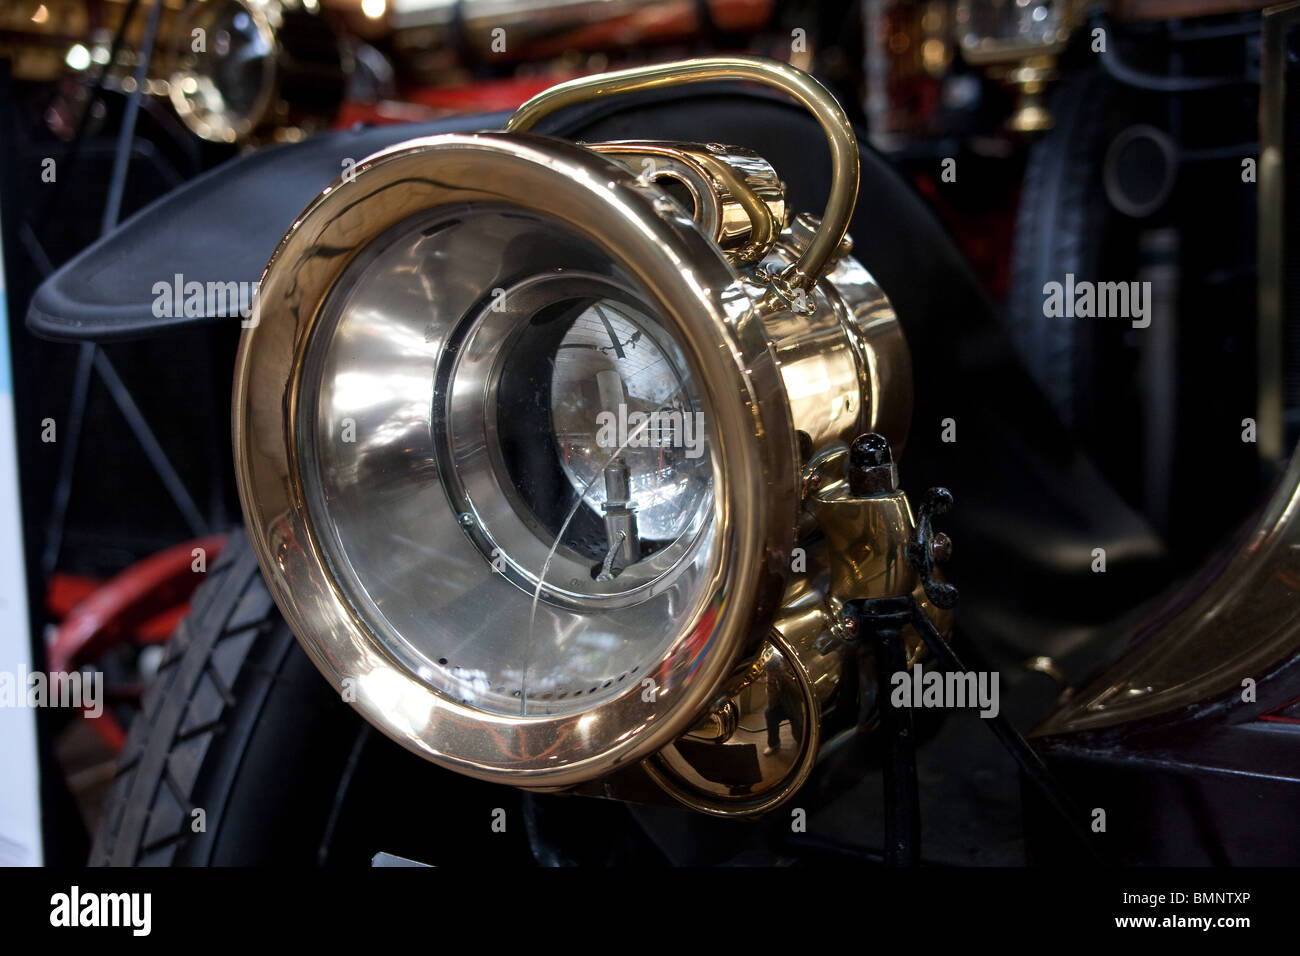 Antique Brass Car Headlights : Brass headlamps on vintage car beaulieu motor museum uk